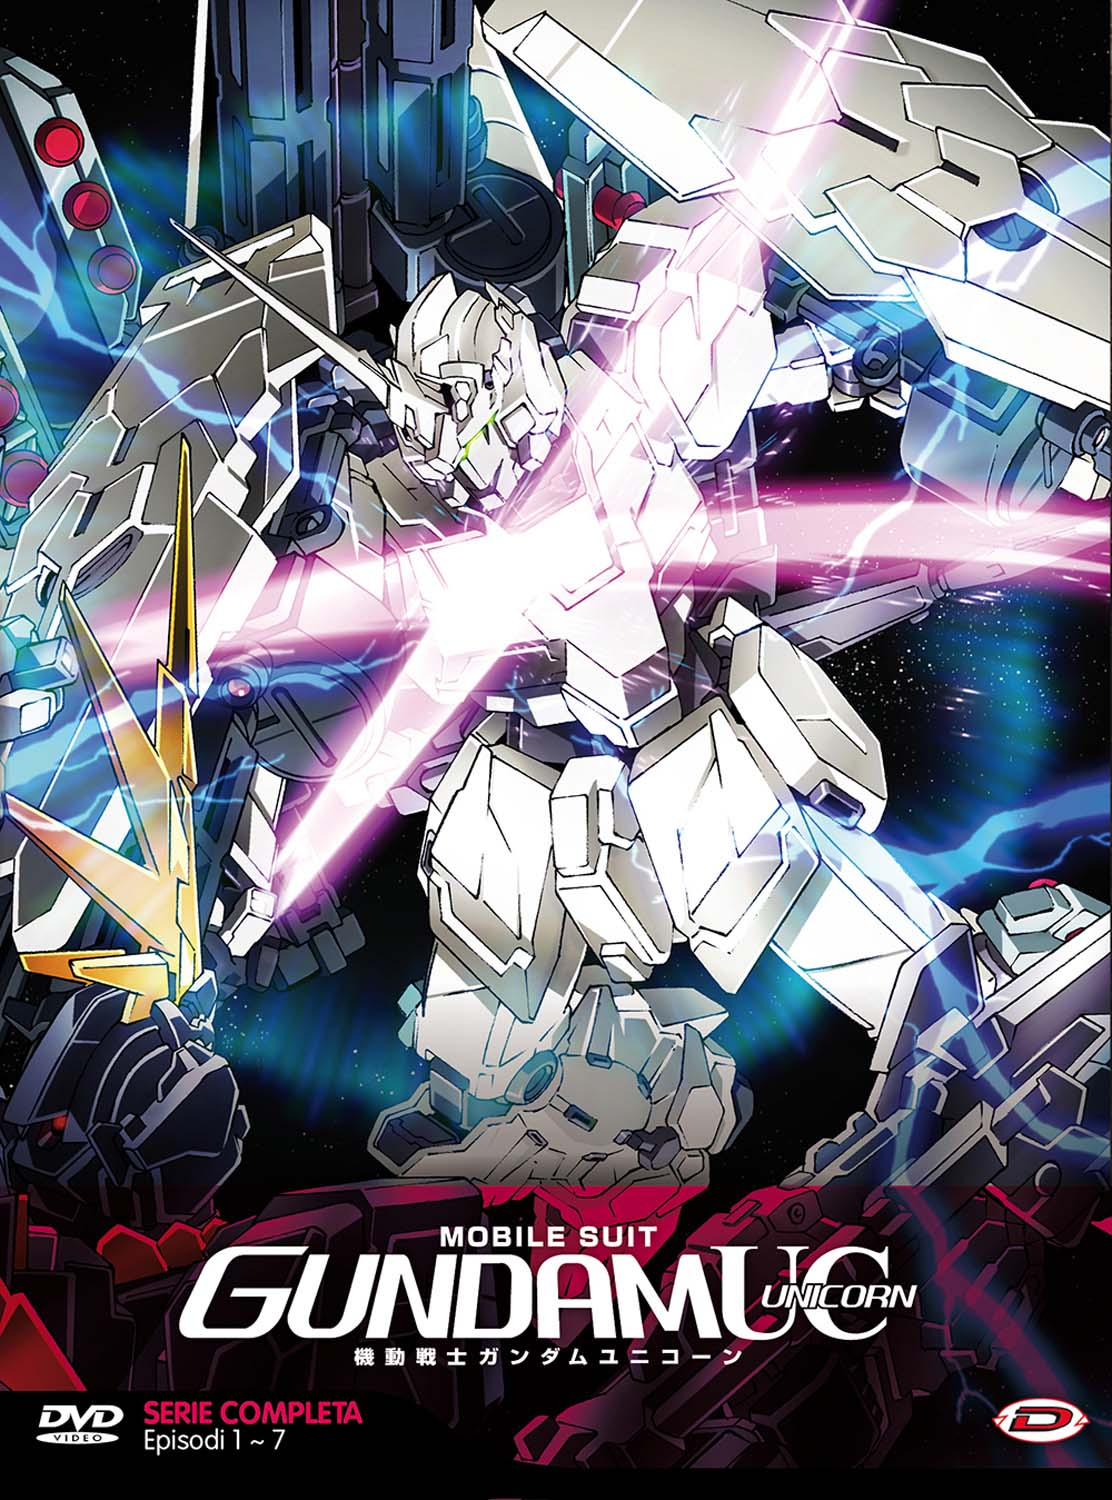 COF.MOBILE SUIT GUNDAM UNICORN THE COMPLETE SERIES 7 OVA (7 DVD)